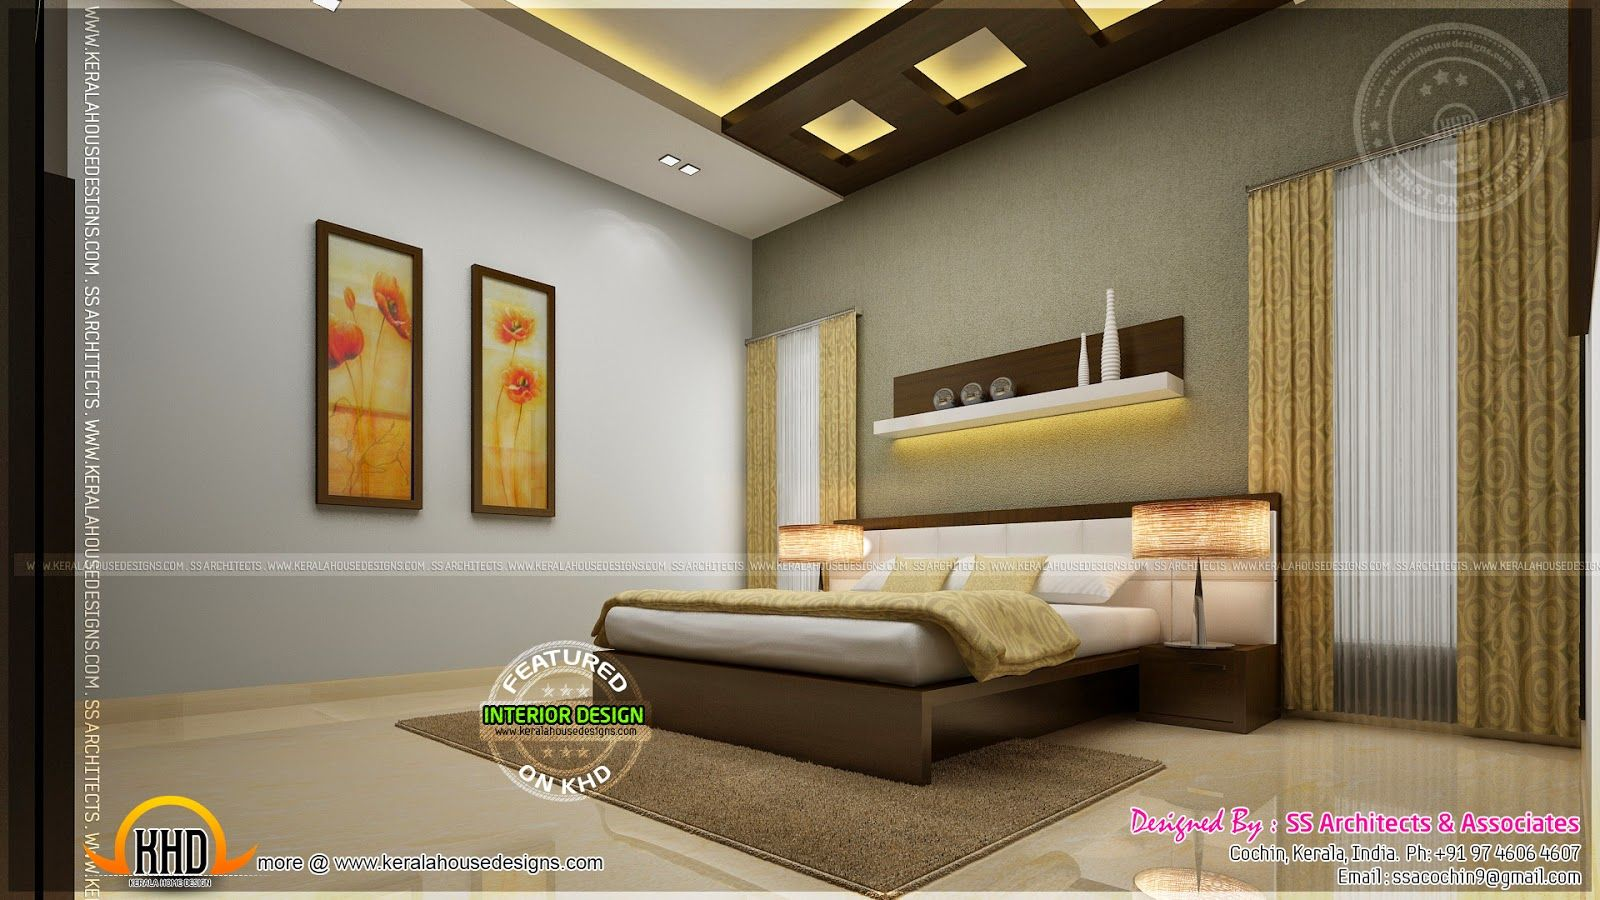 Indian master bedroom interior design google search for Bed room interior design images